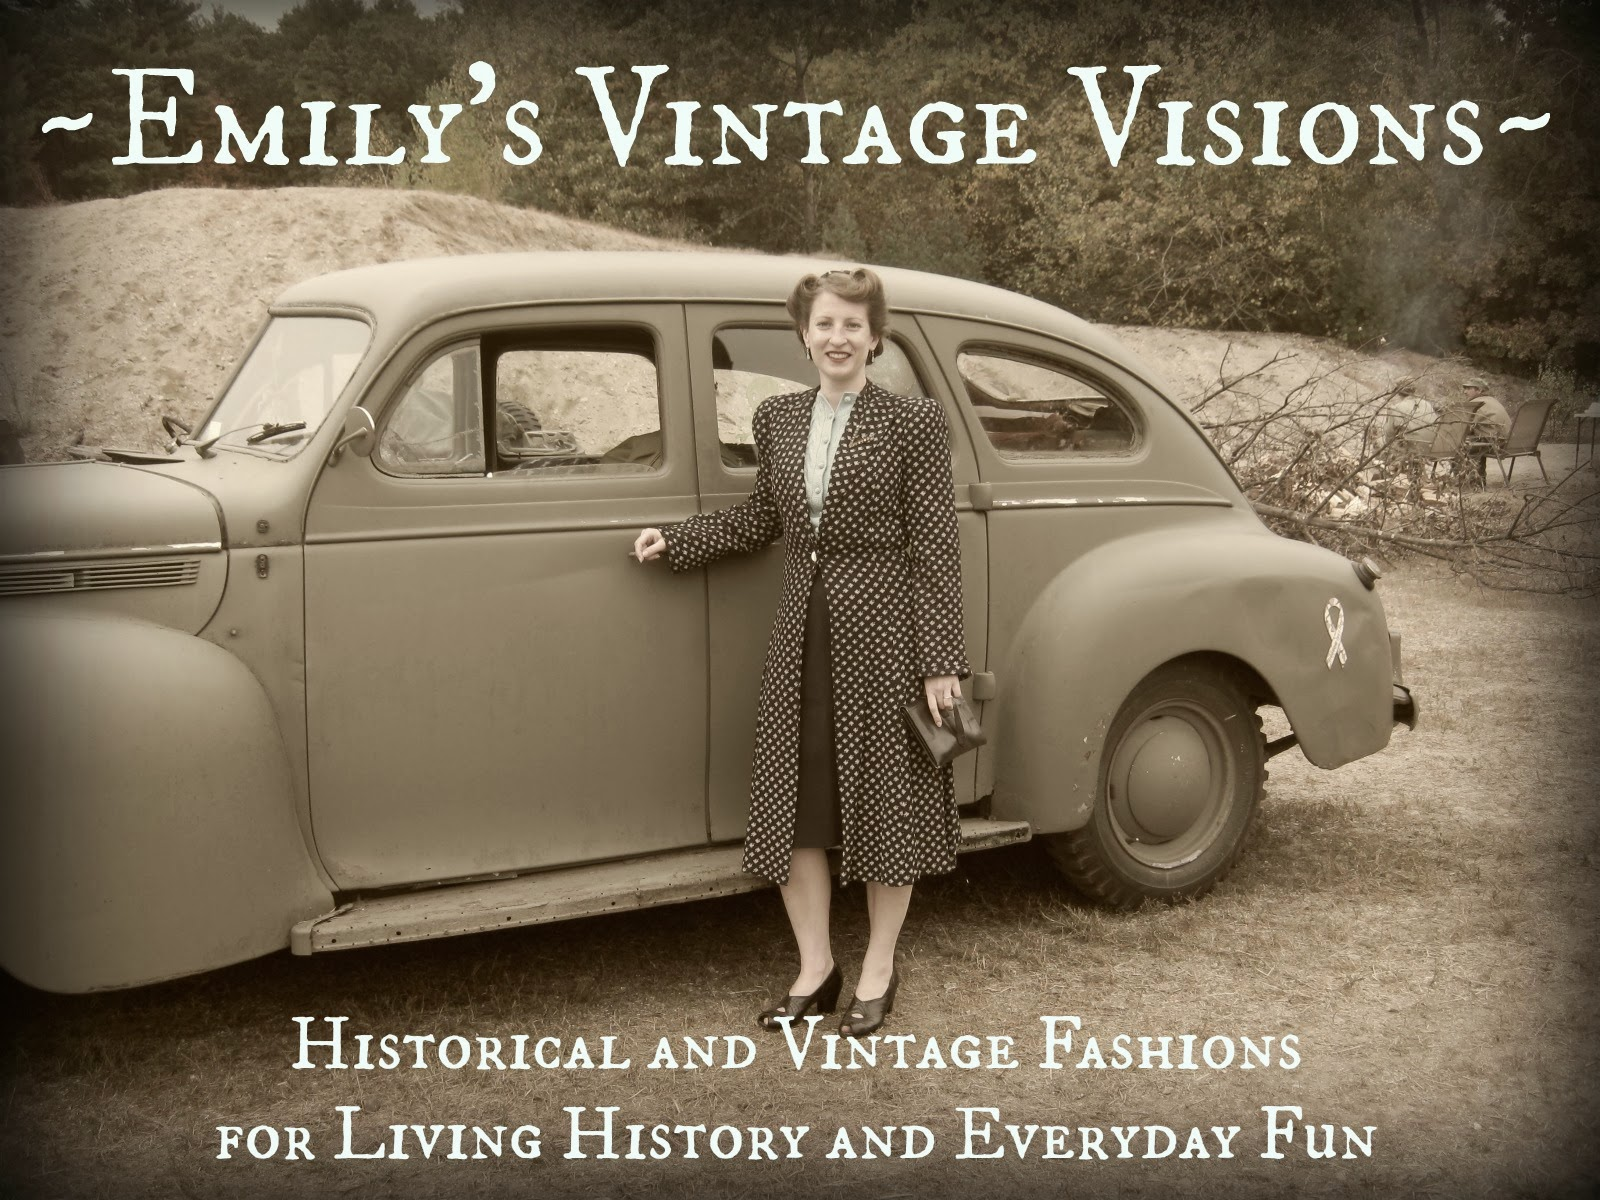 Emily's Vintage Visions